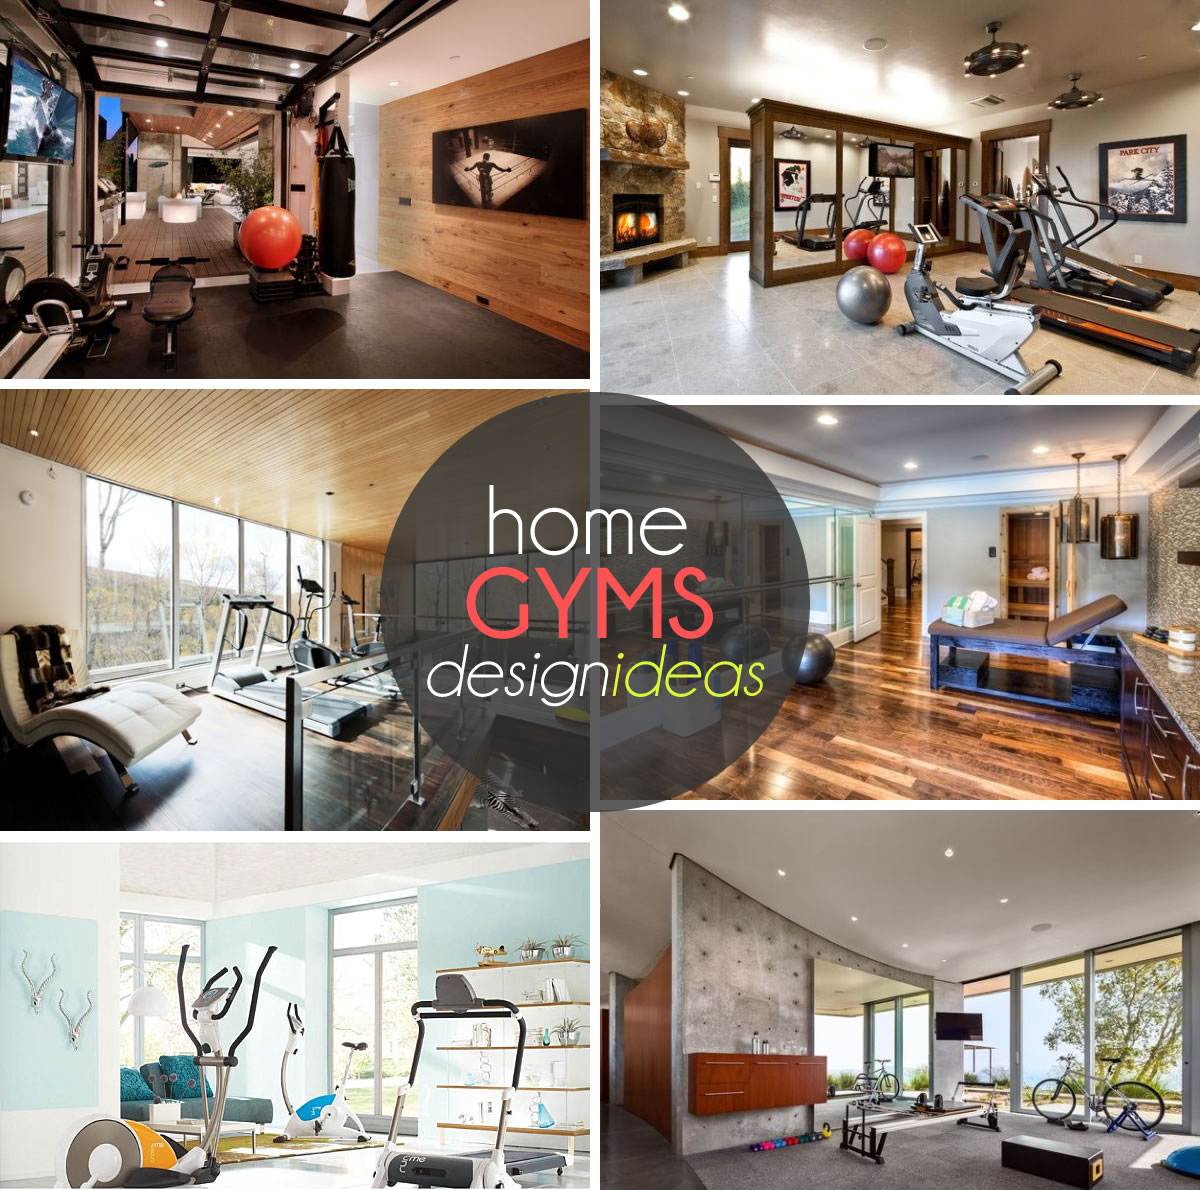 Home Gym Design Ideas: 70+ Home Gym Ideas And Gym Rooms To Empower Your Workouts